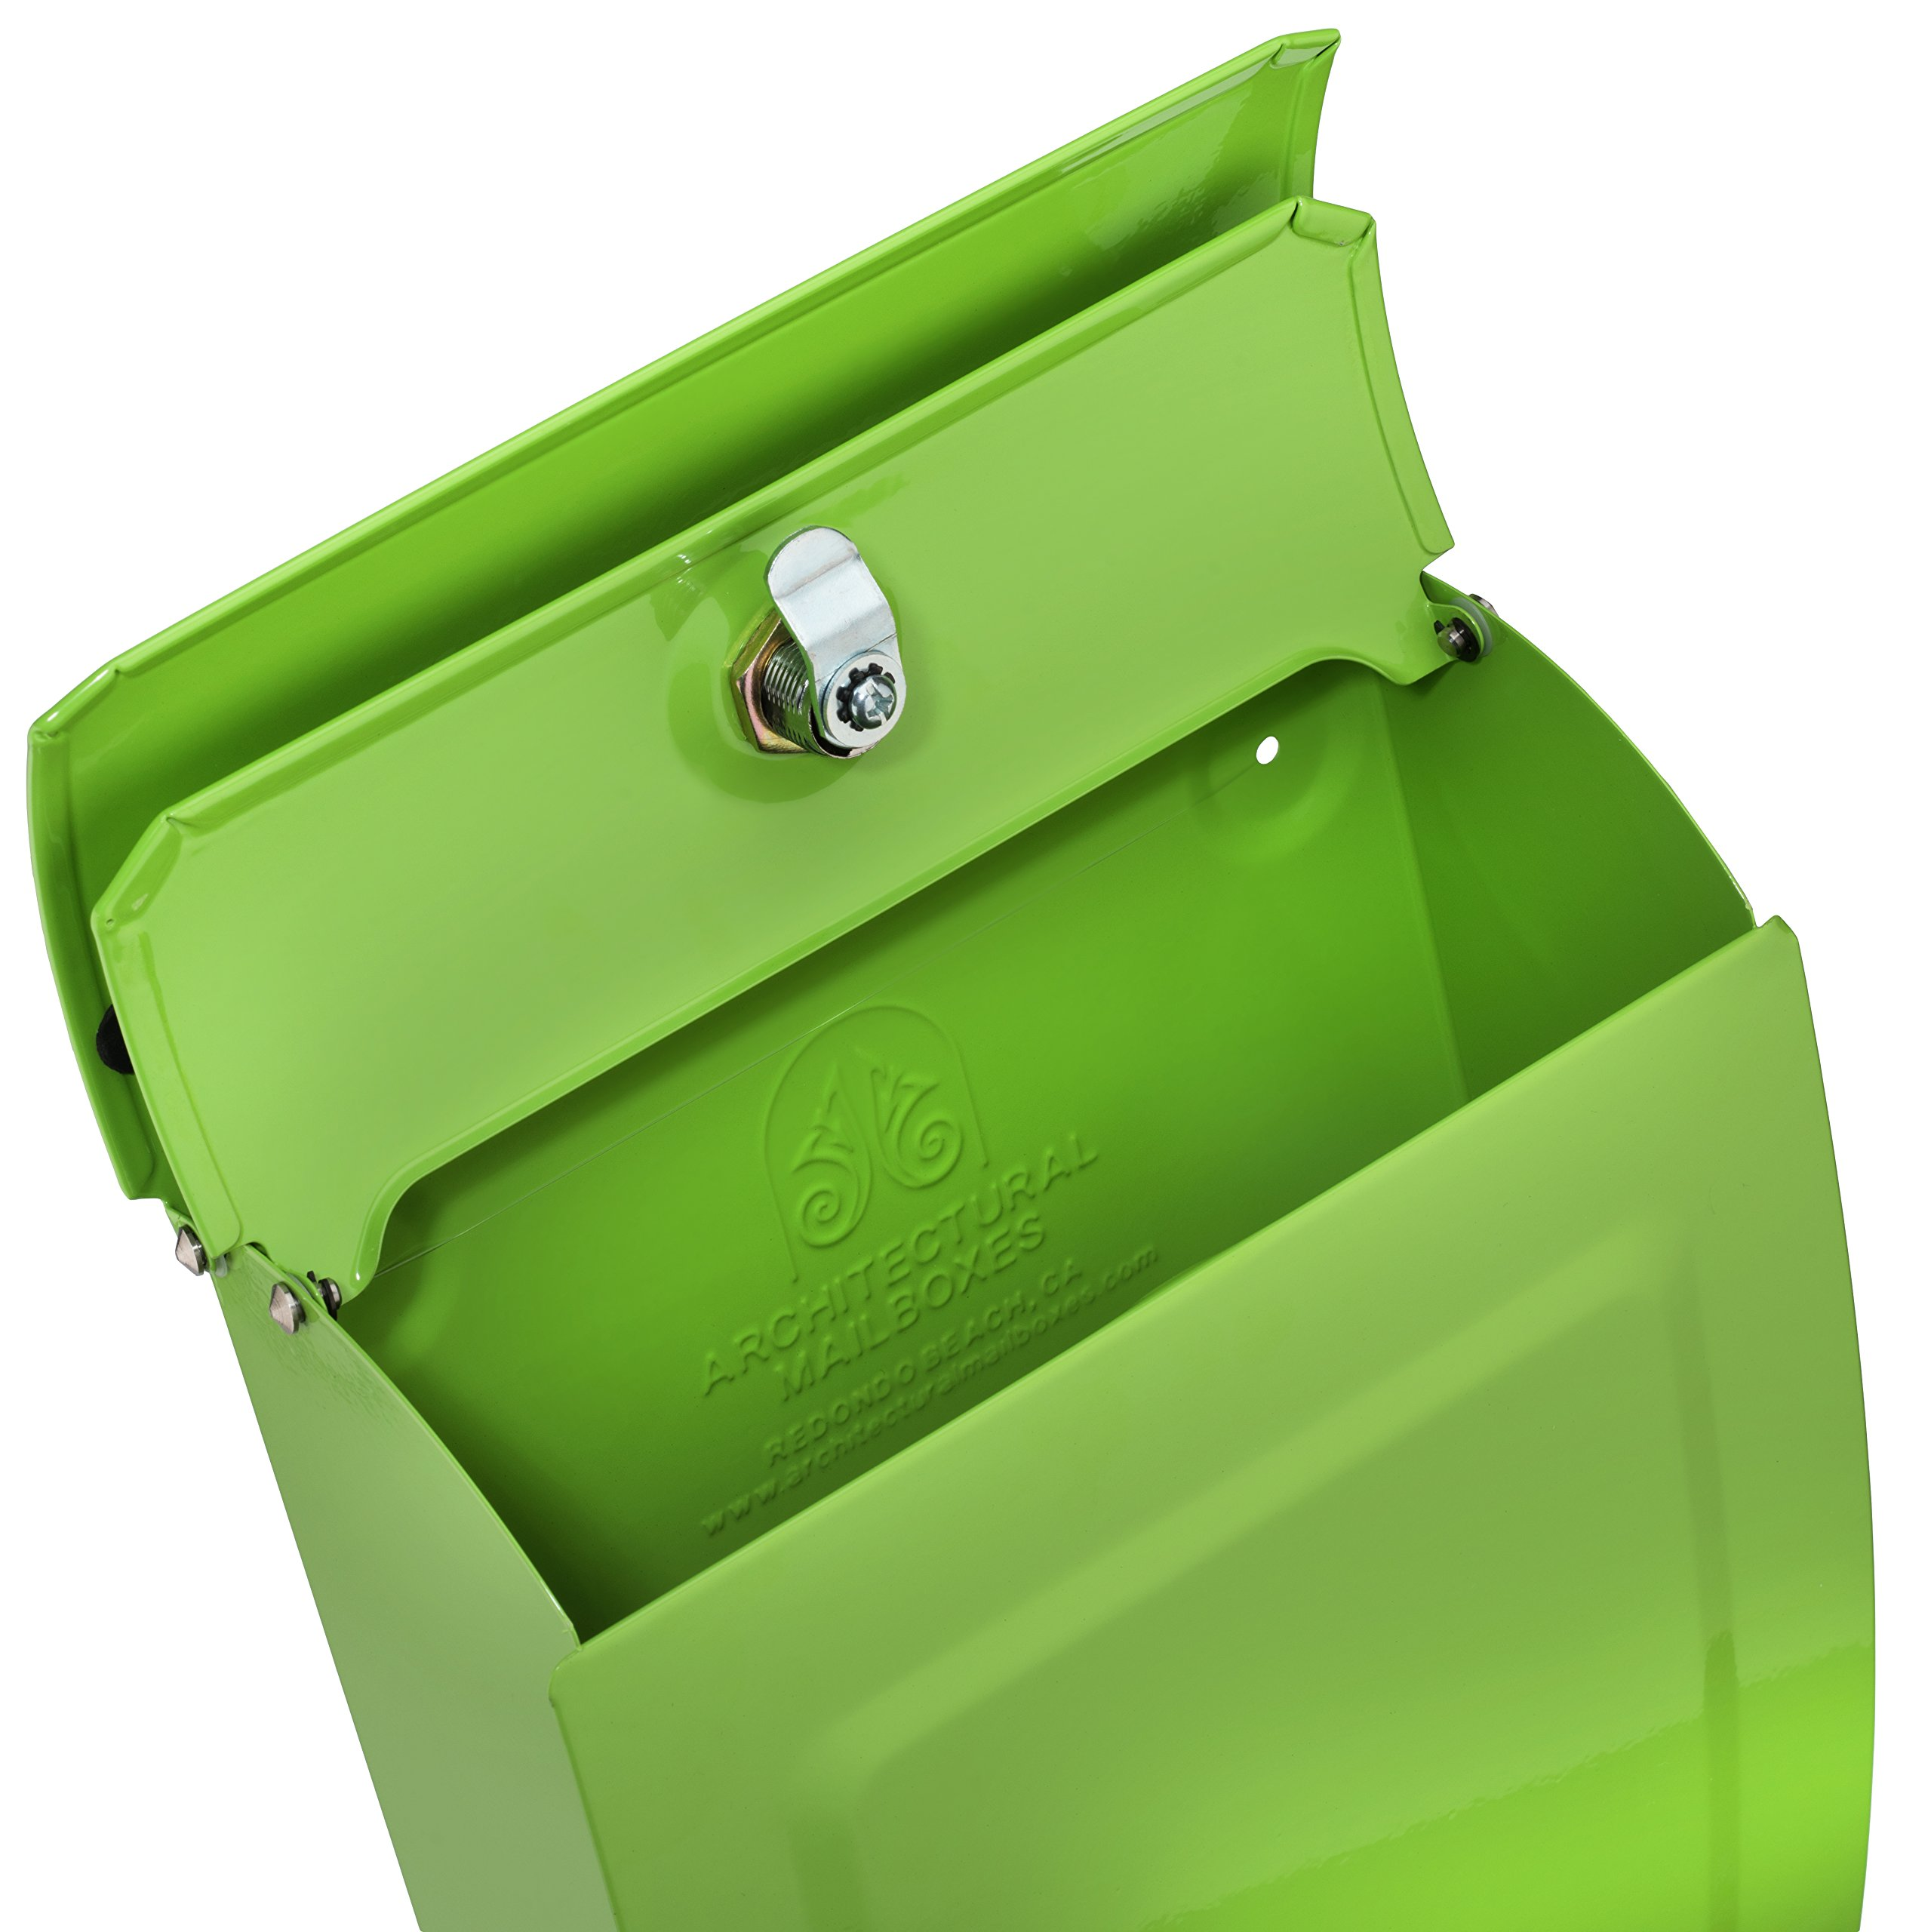 ARCHITECTURAL MAILBOXES 2594LG Architectural Mailboxes Aspen Locking Wall Mount Mailbox Lime Green Aspen Locking Wall Mount Mailbox, Small, Lime Green by ARCHITECTURAL MAILBOXES (Image #4)